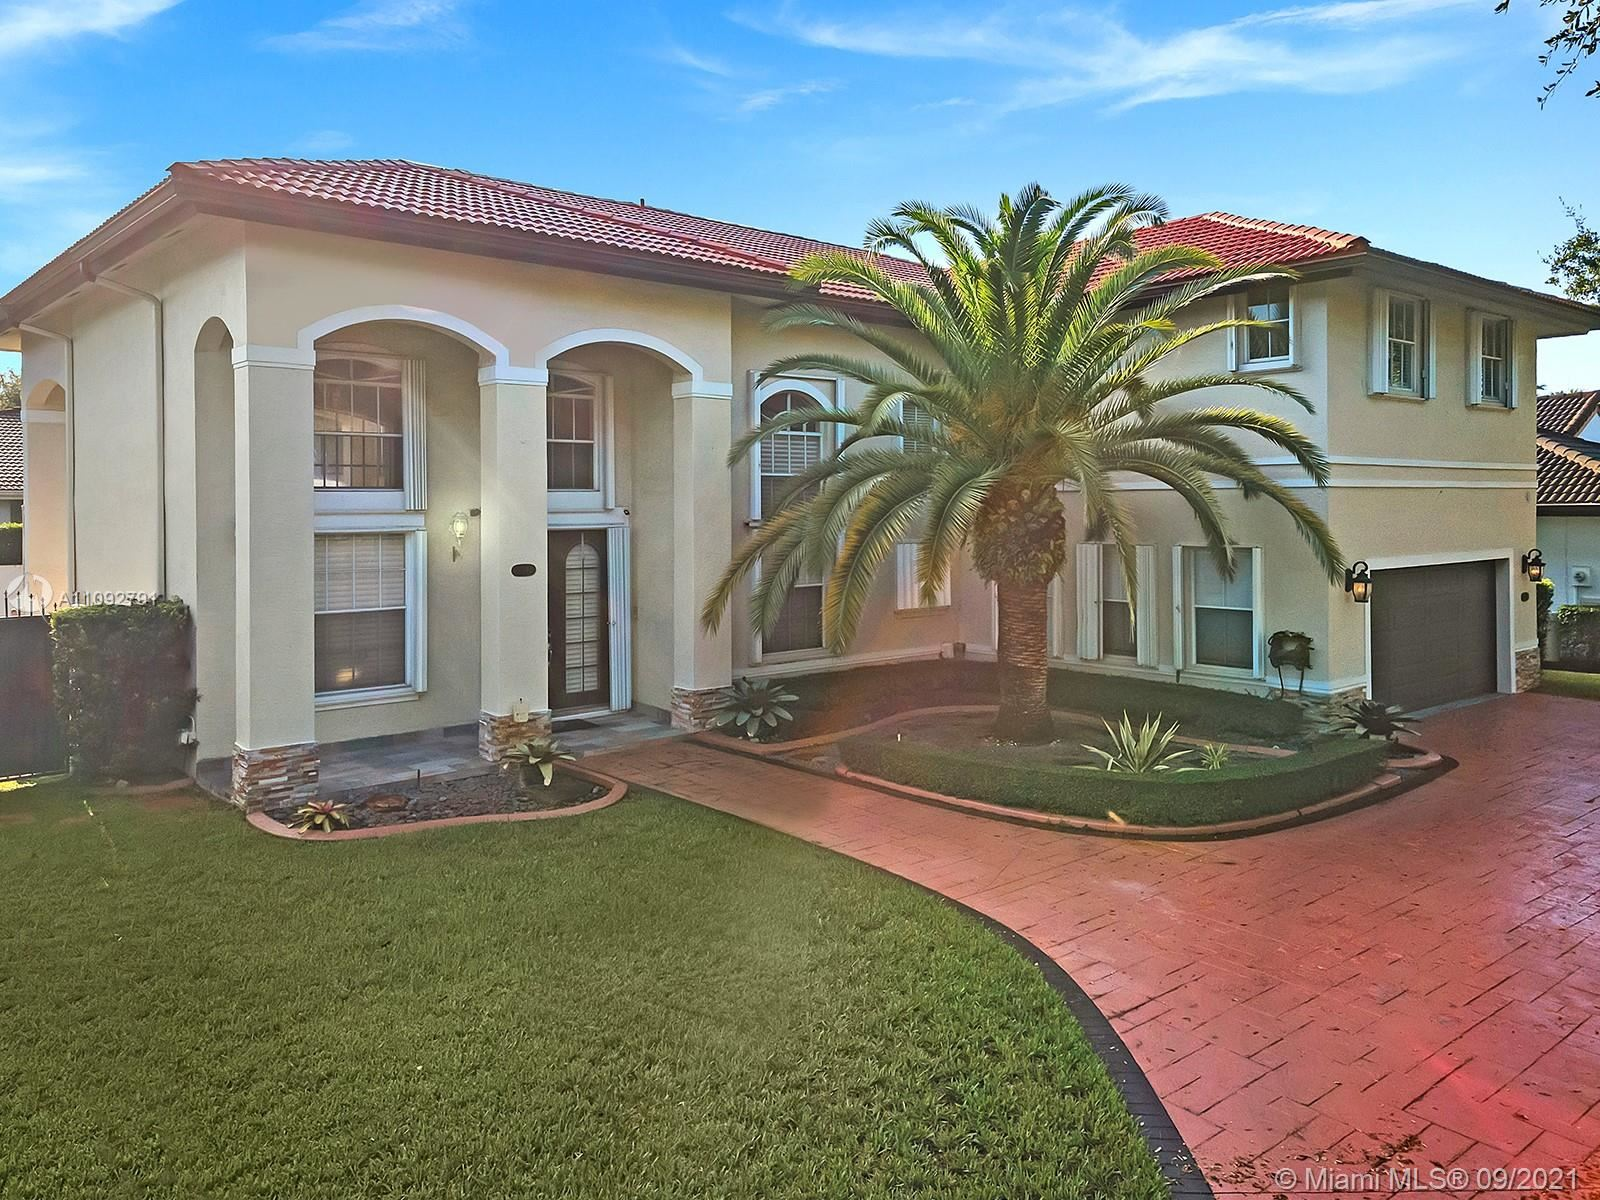 15941 NW 83rd Ave, Miami Lakes, FL 33016 - #: A11092791